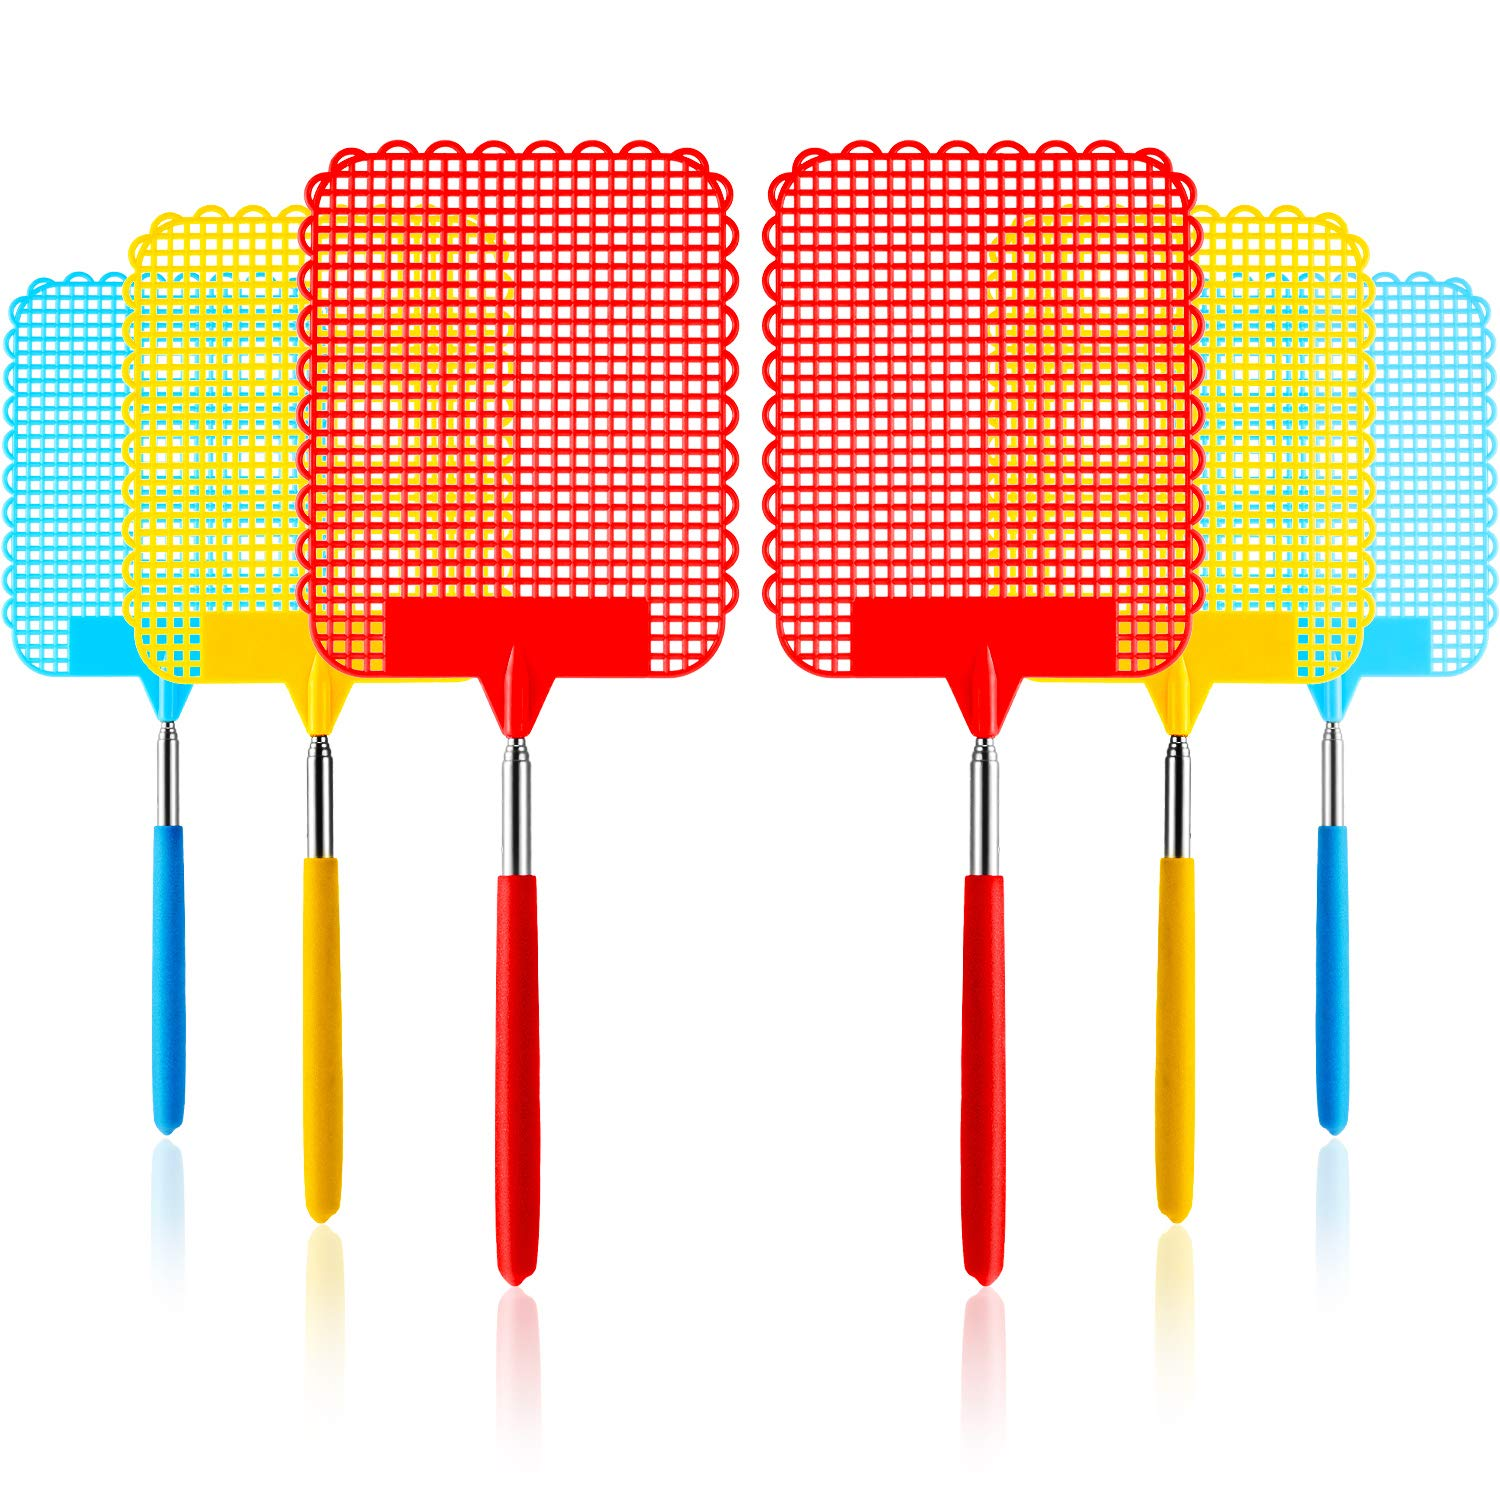 Tatuo Large Extendable Fly Swatter, Manual Swat Pest Control with Strong Flexible Durable Telescopic Handle, Lightweight (Multicolor C) by Tatuo